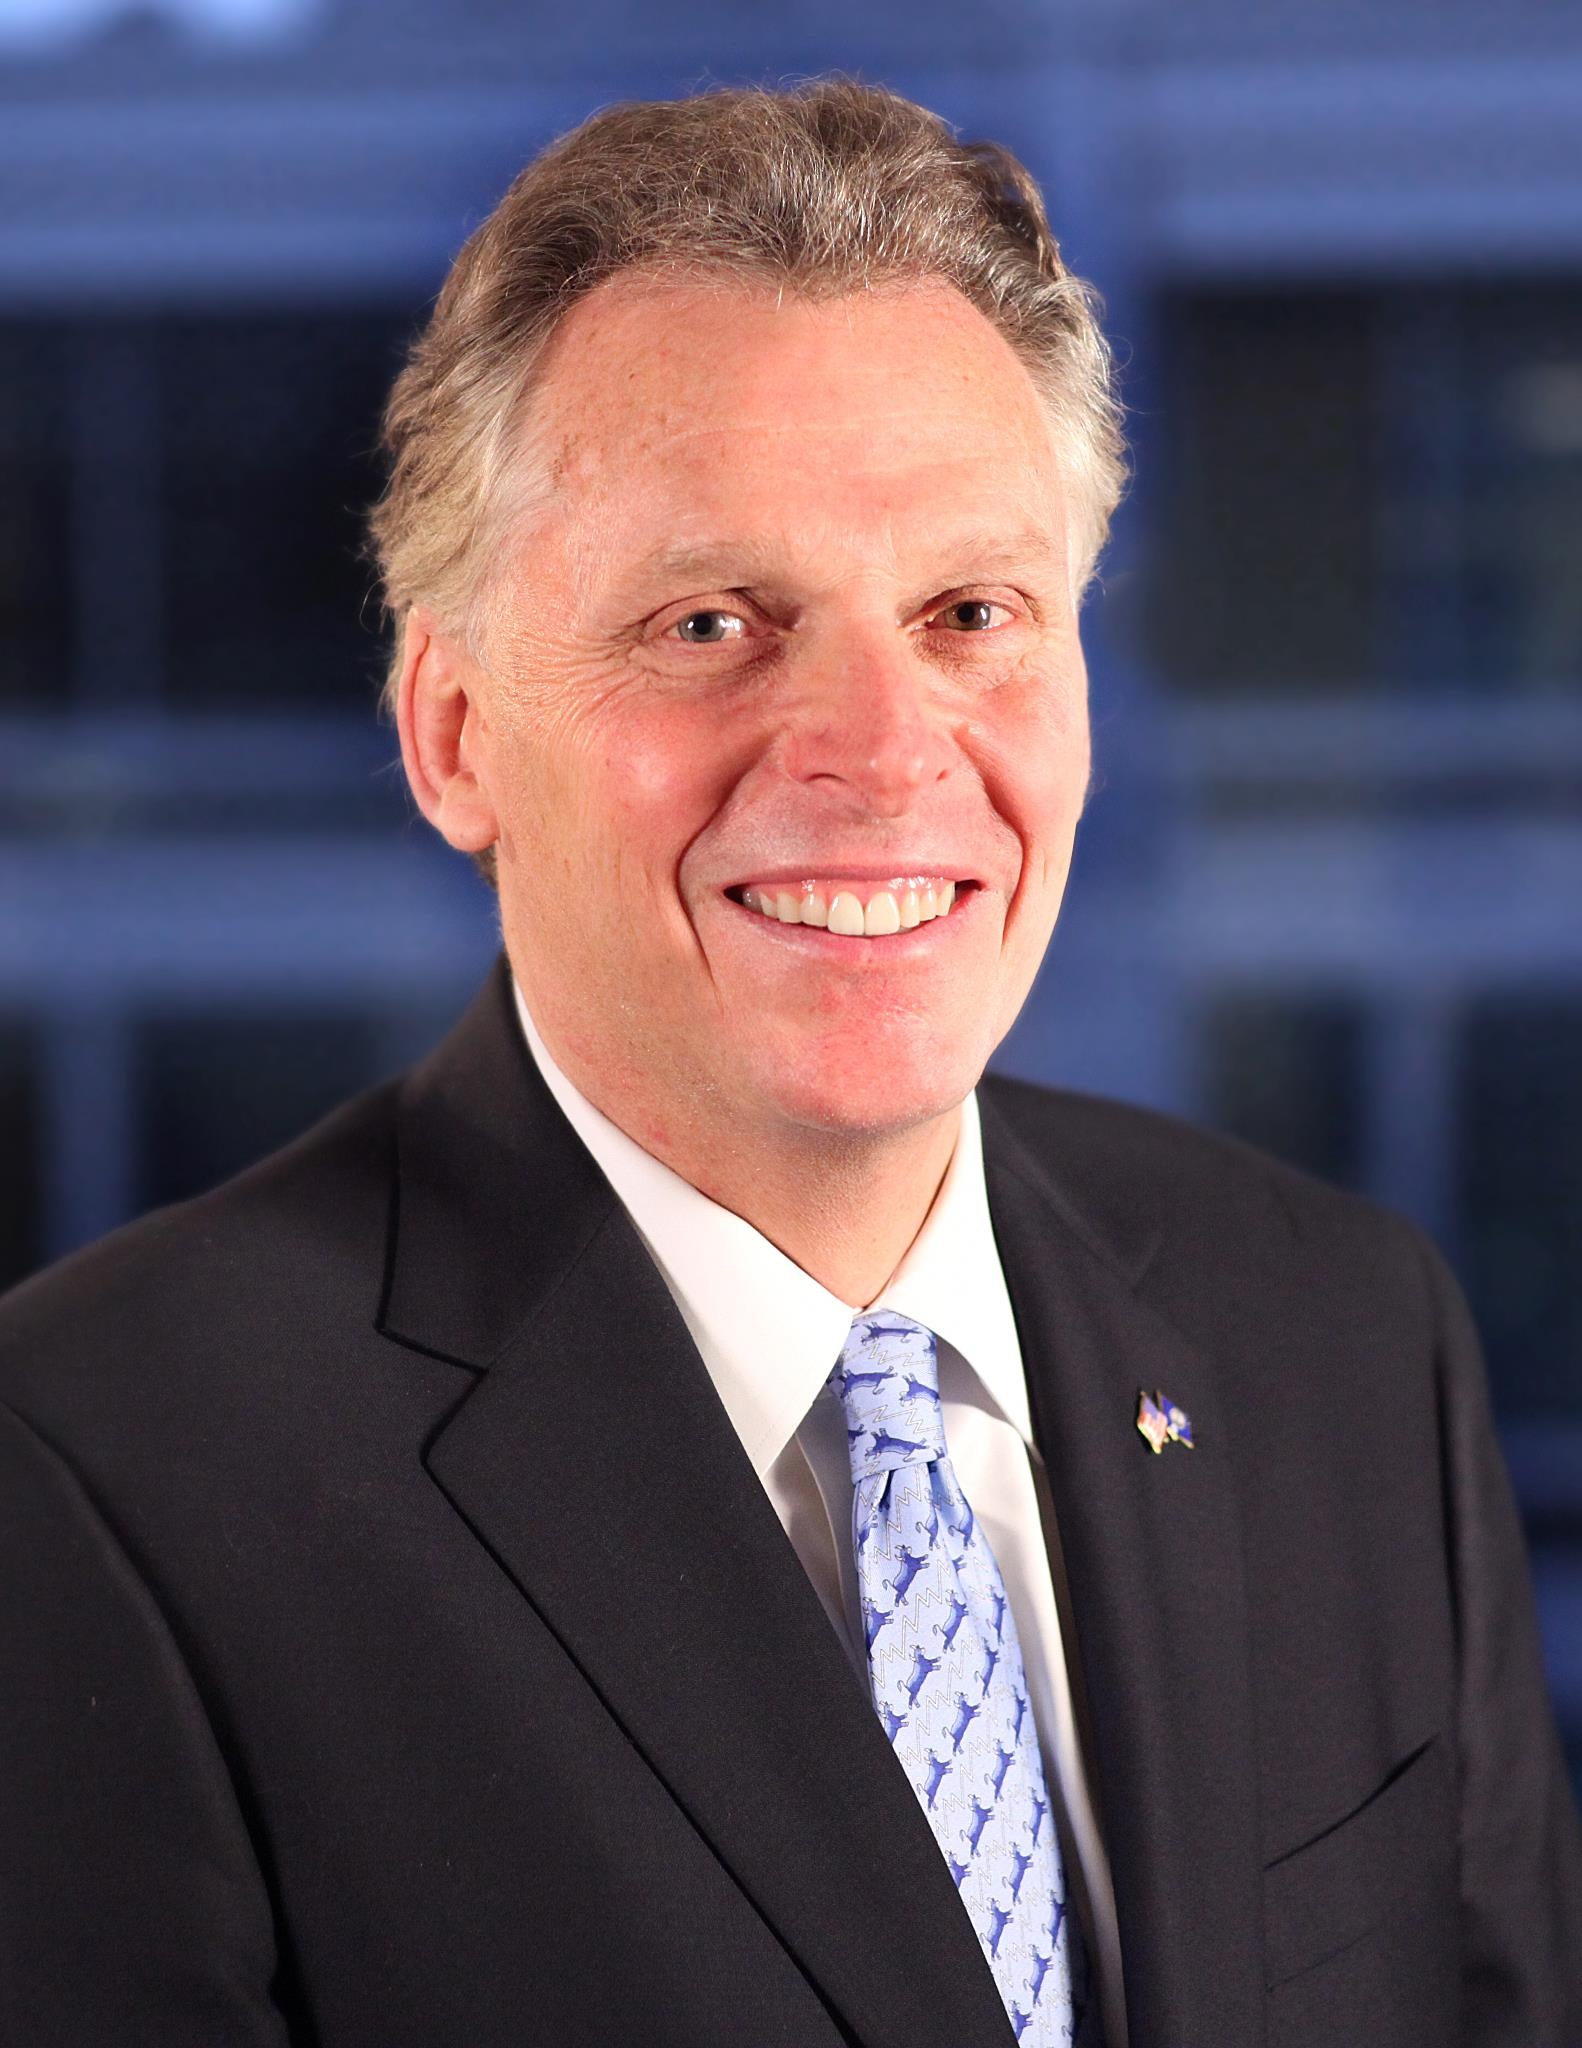 Governor-elect Terry McAuliffe will provide keynote address